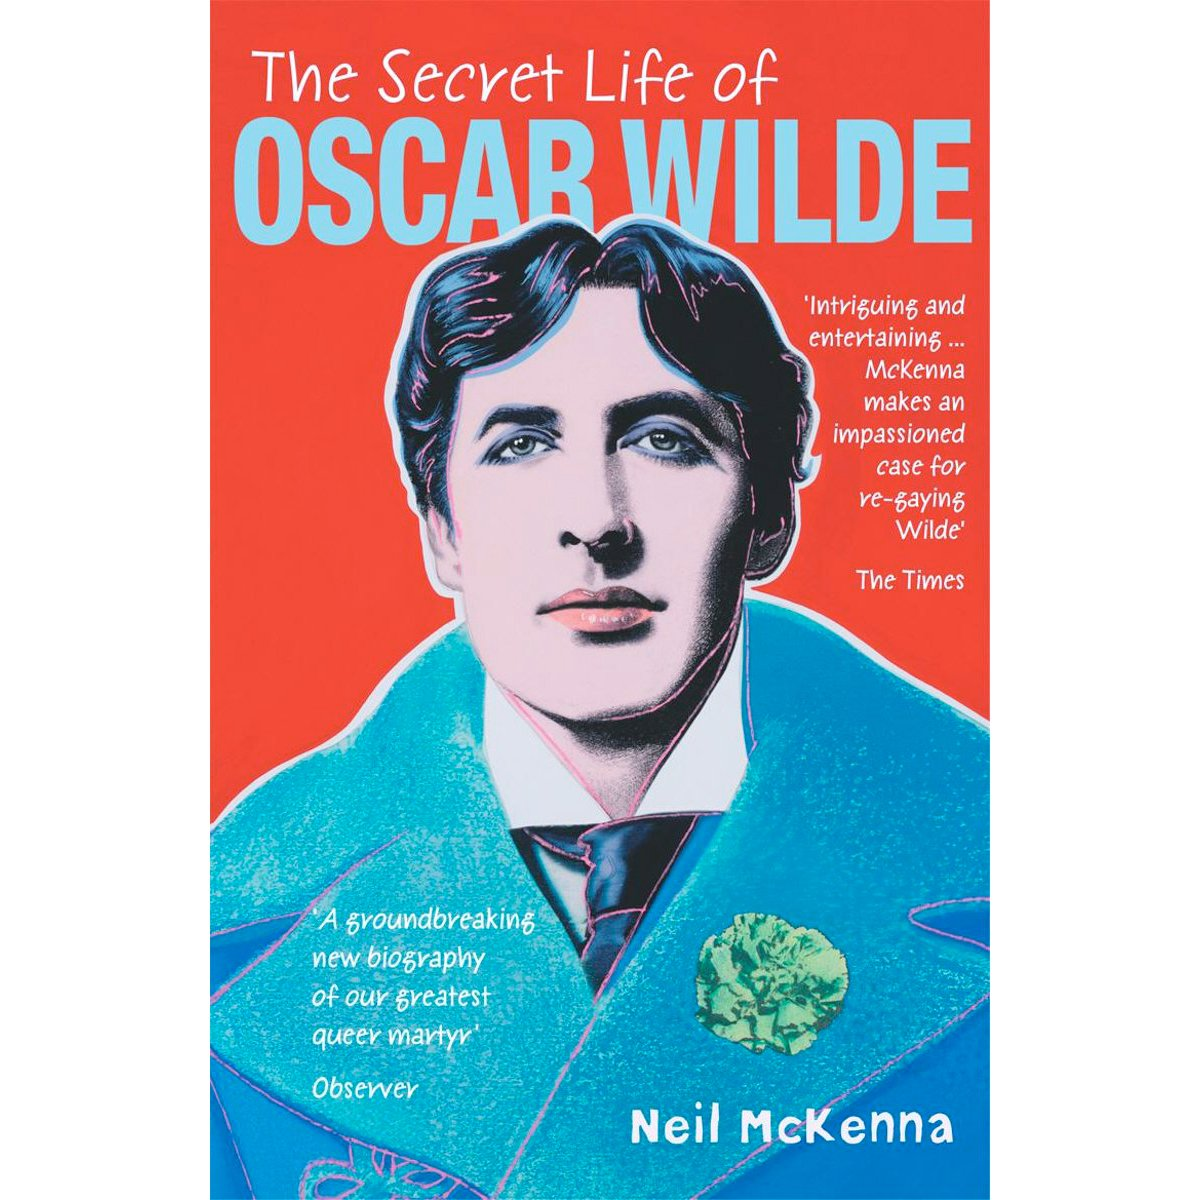 Neil McKenna - The Secret Life of Oscar Wilde